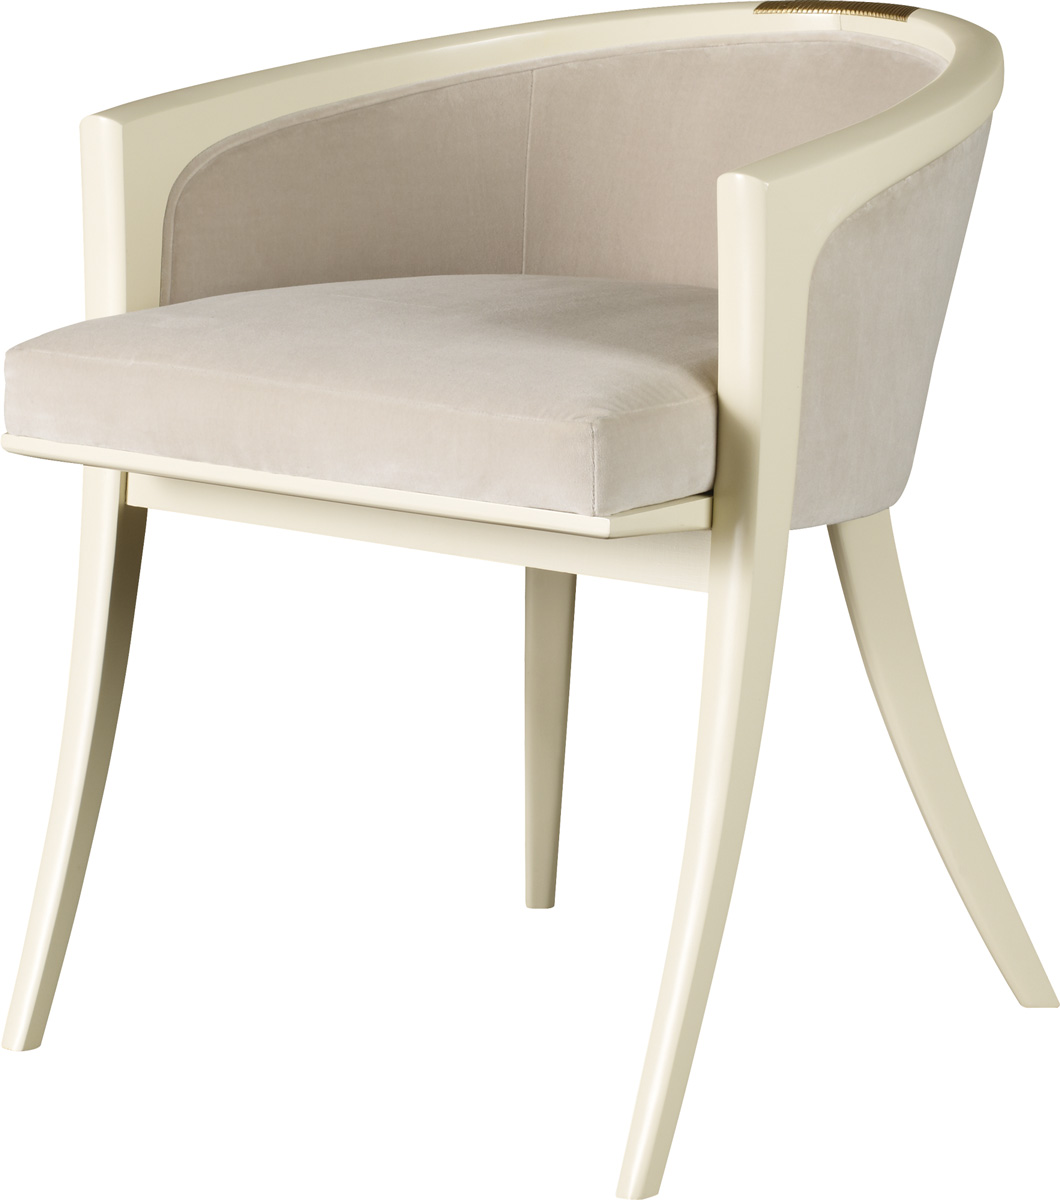 DIANA VANITY CHAIR